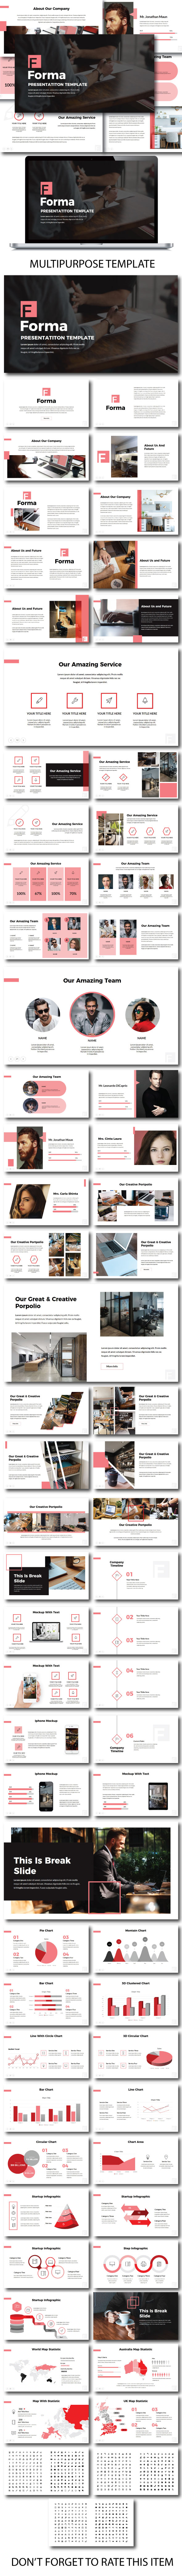 Forma Pitch Deck PowerPoint - PowerPoint Templates Presentation Templates